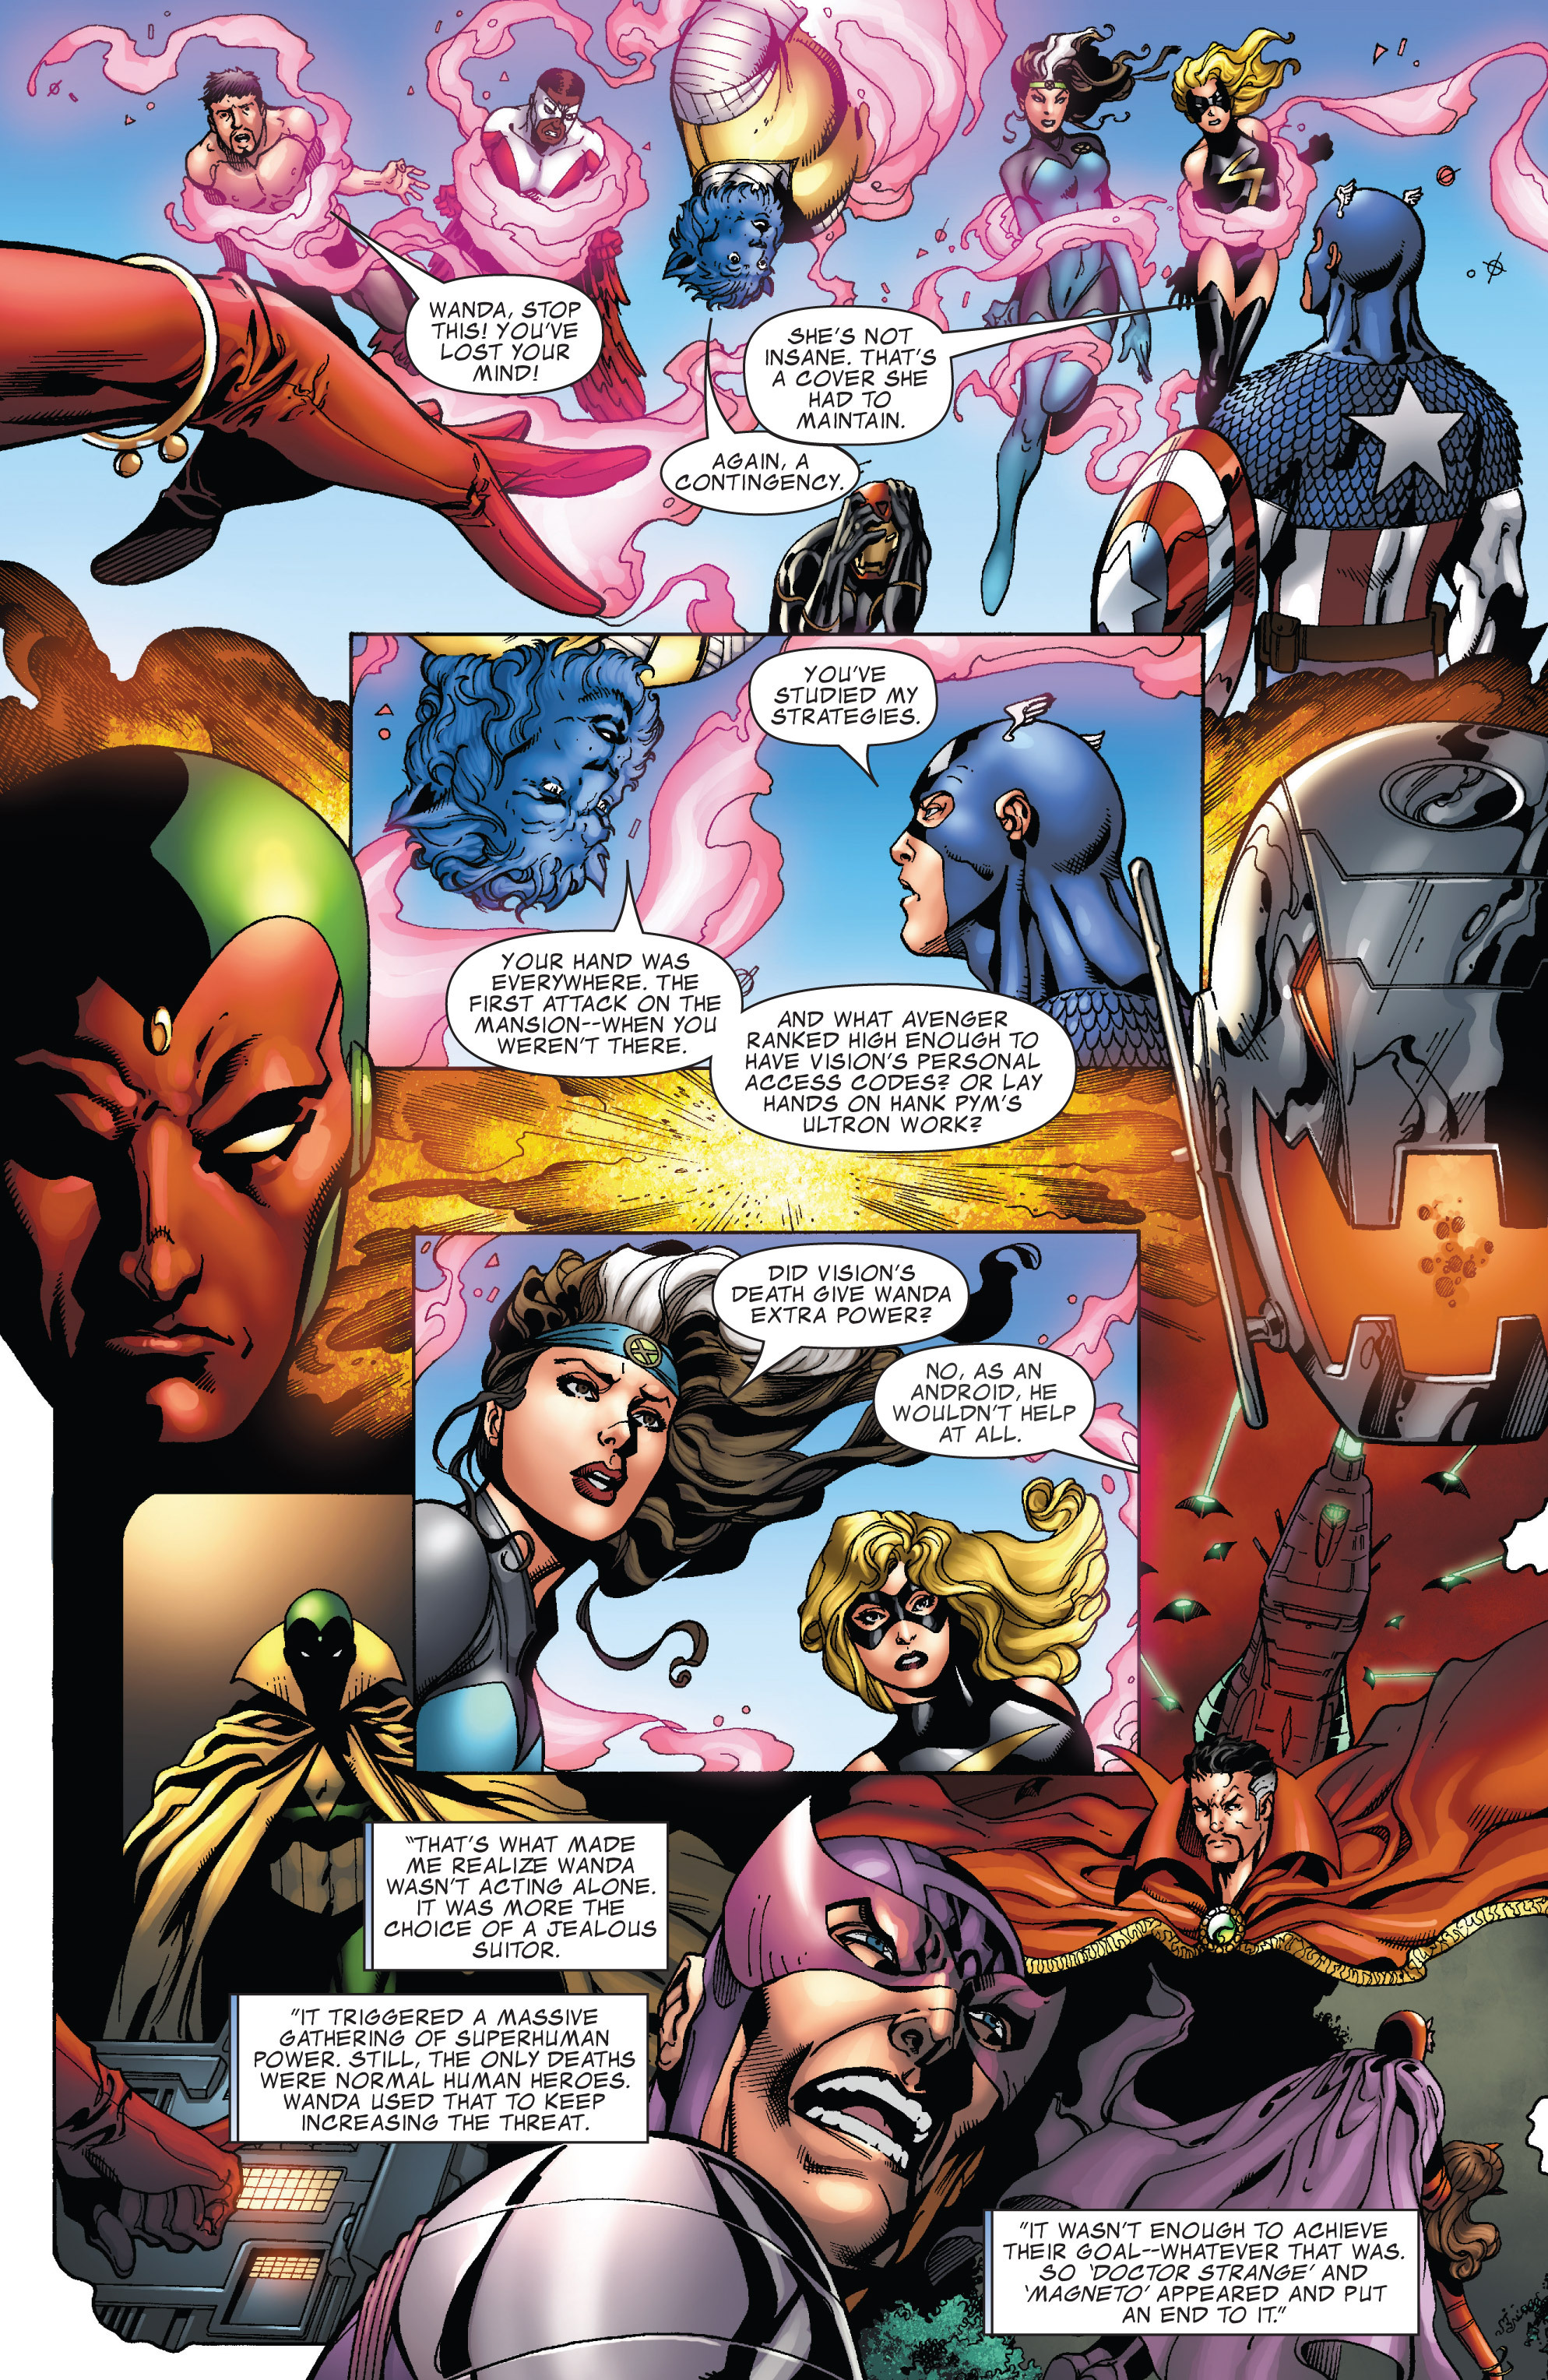 scans_daily | What If? Featuring Avengers Disassembled